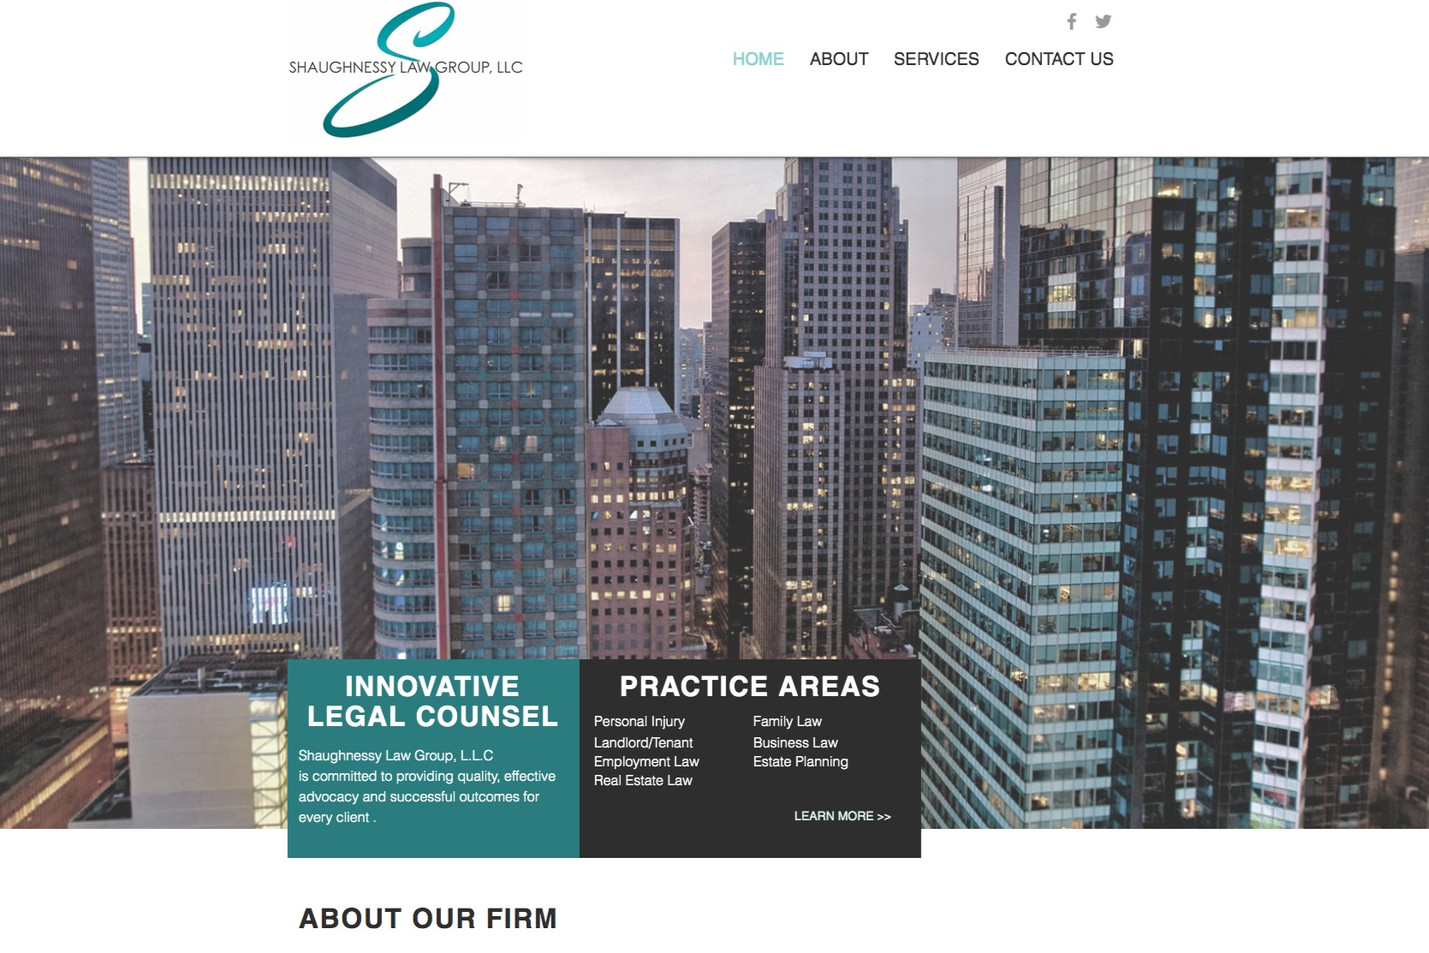 Shaughnessy Law Group